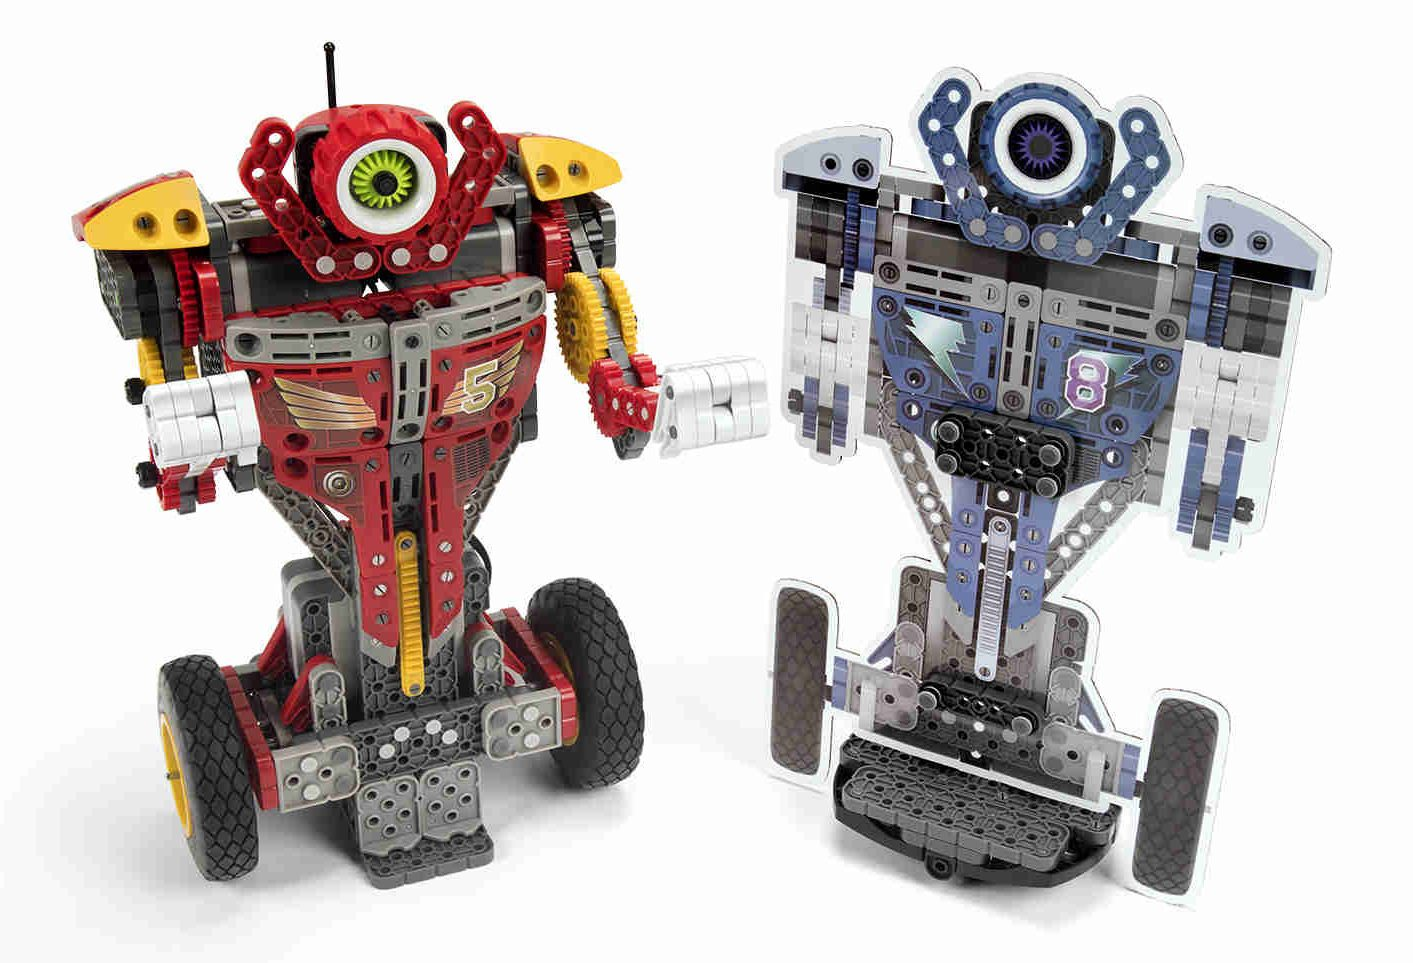 Holiday Gift Guide for Kids - VEX Balancing Boxing Bots